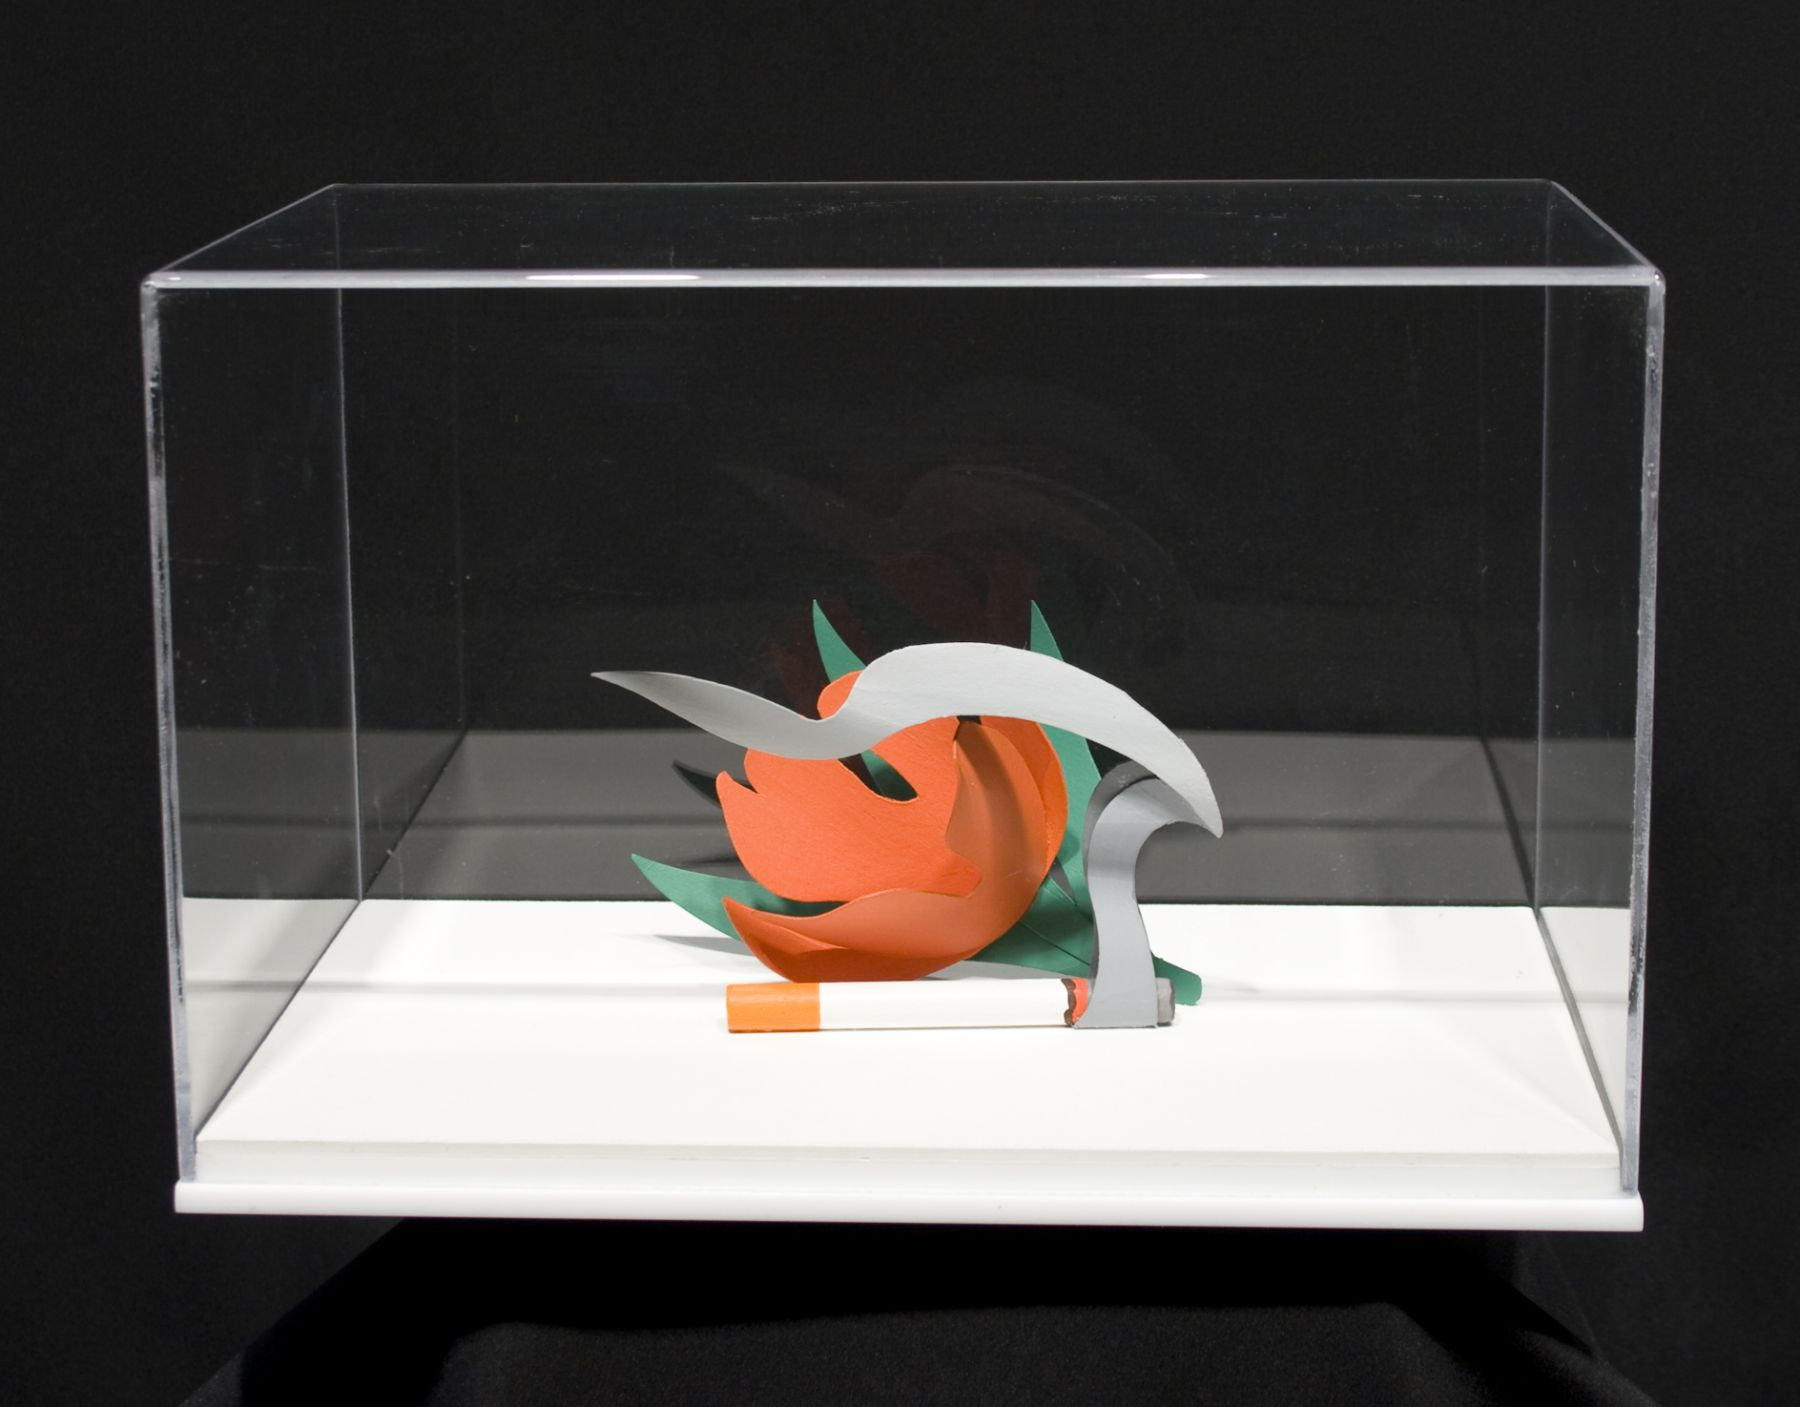 Tom Wesselmann, Maquette for Tulip and Smoking Cigarette, 1983, liquitex on cardboard and wood in plexiglass box, 3 1/2 x 5 1/2 3 x 1/2 inches, box size: 7 1/4 x 11 1/2 x 7 1/4 inches